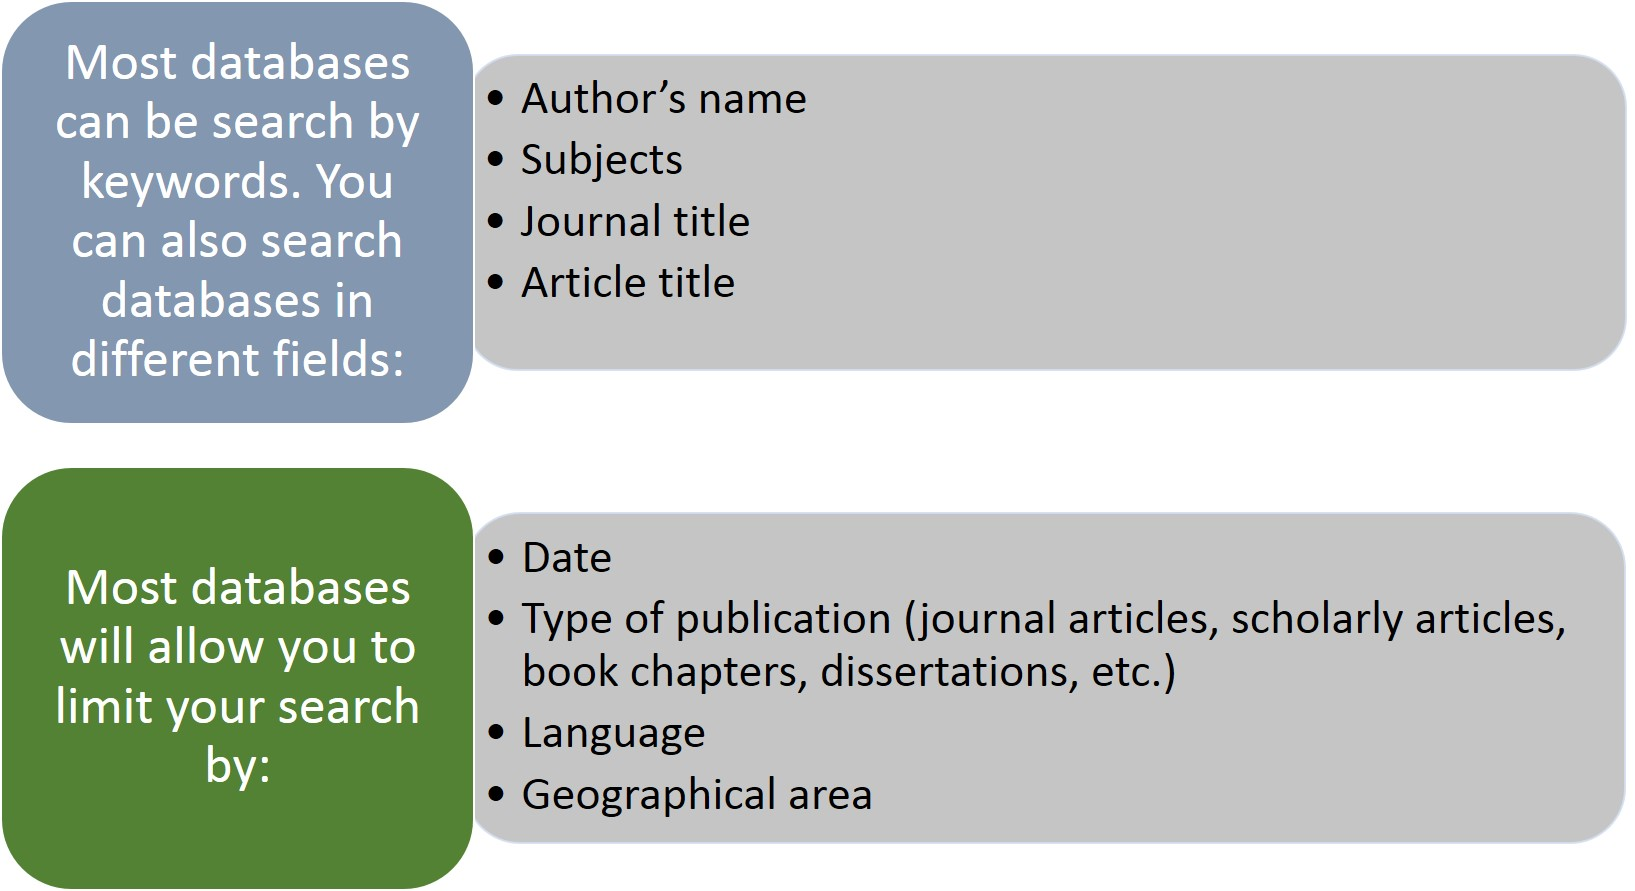 Databases can be searched many different ways. You can search by keyword or by fields, such as author's name, subject, journal title, article title. You can also limit your search by date, type of publication (e.g., journal article, scholarly article, etc), language, and more